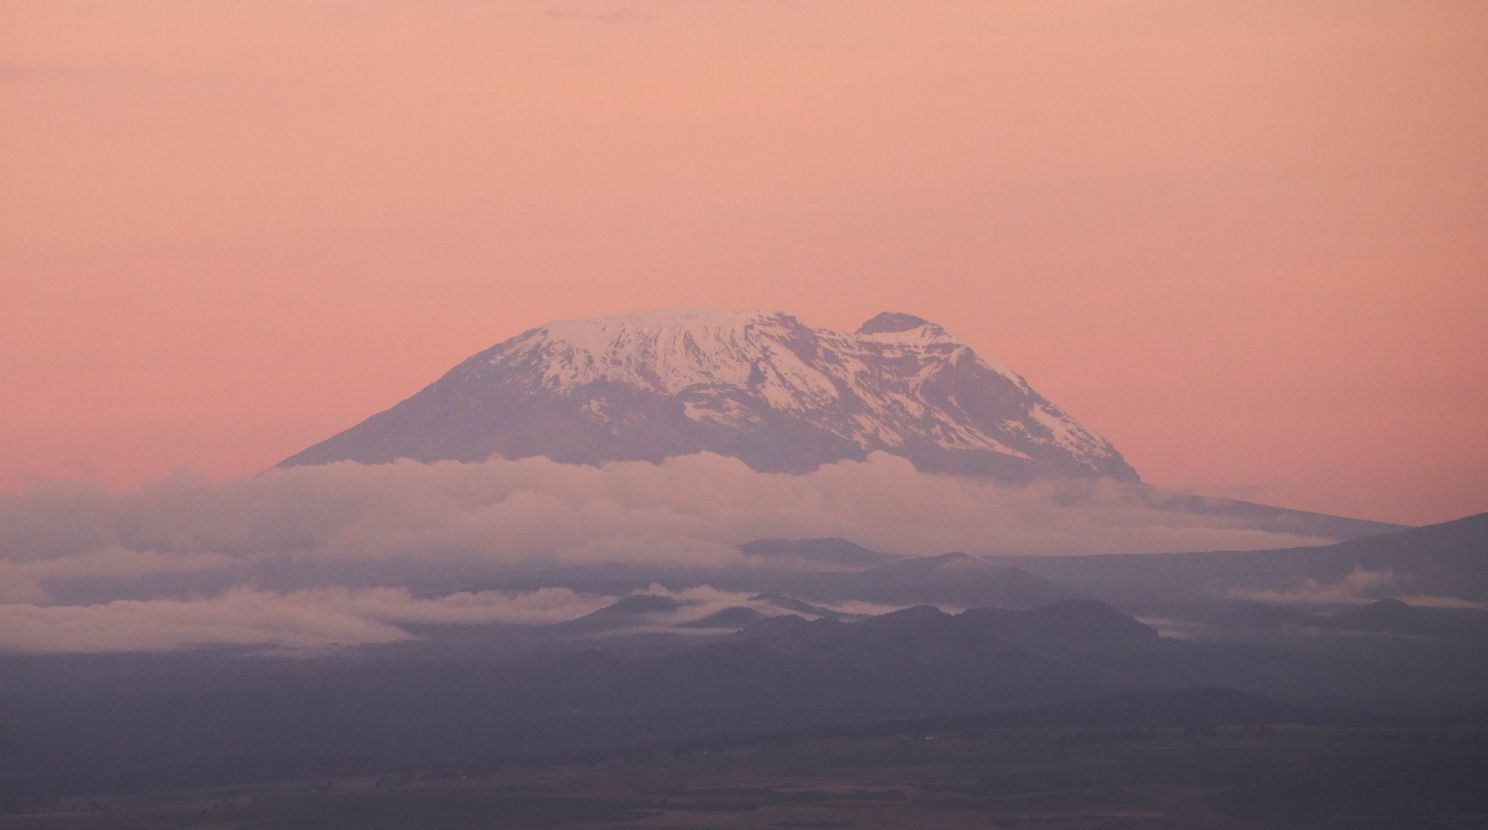 Mt. Kilimanjaro against a pink sky